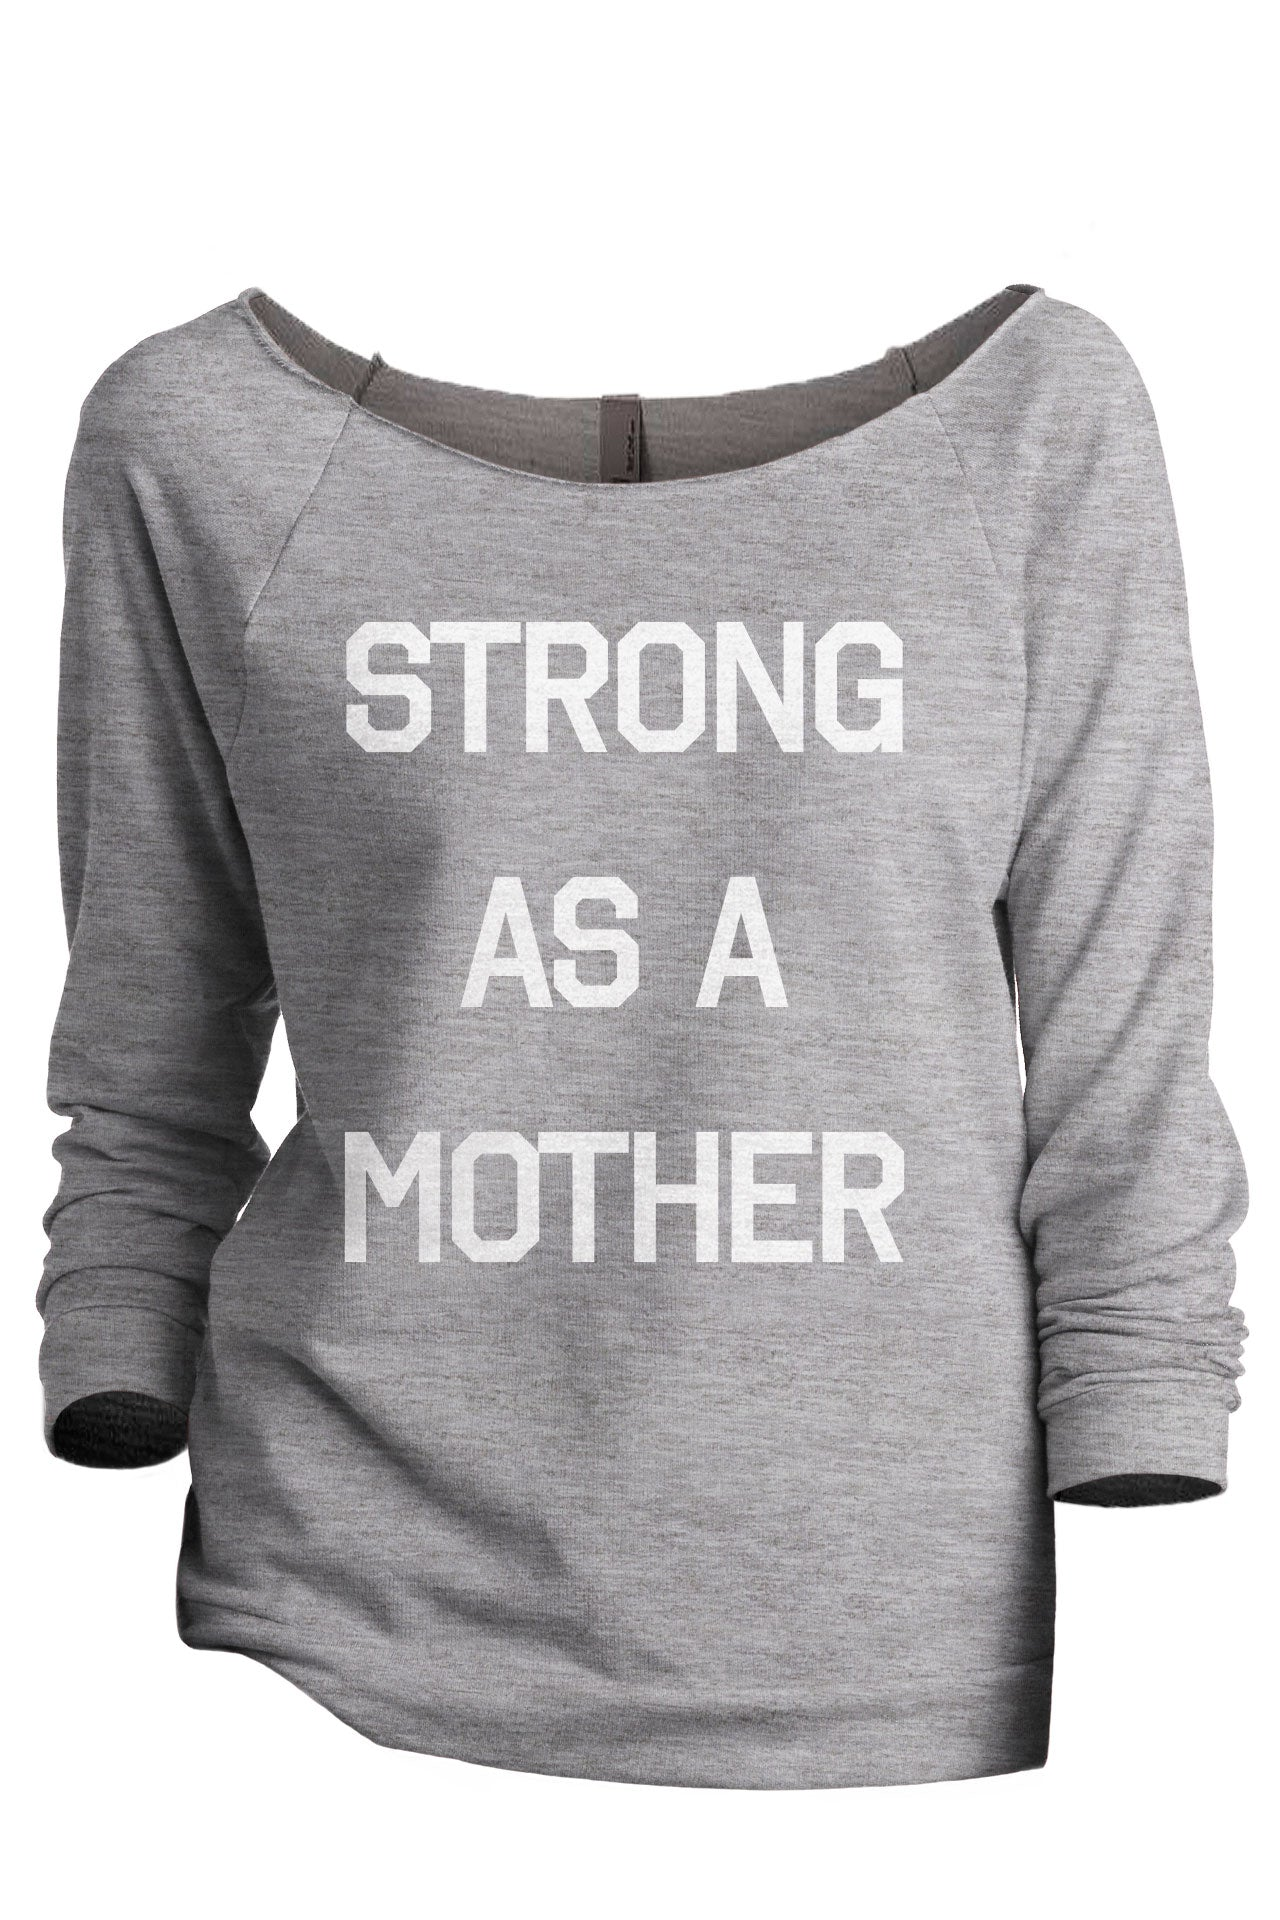 Strong As A Mother Women's Graphic Printed Lightweight Slouchy 3/4 Sleeves Sweatshirt Sport Grey